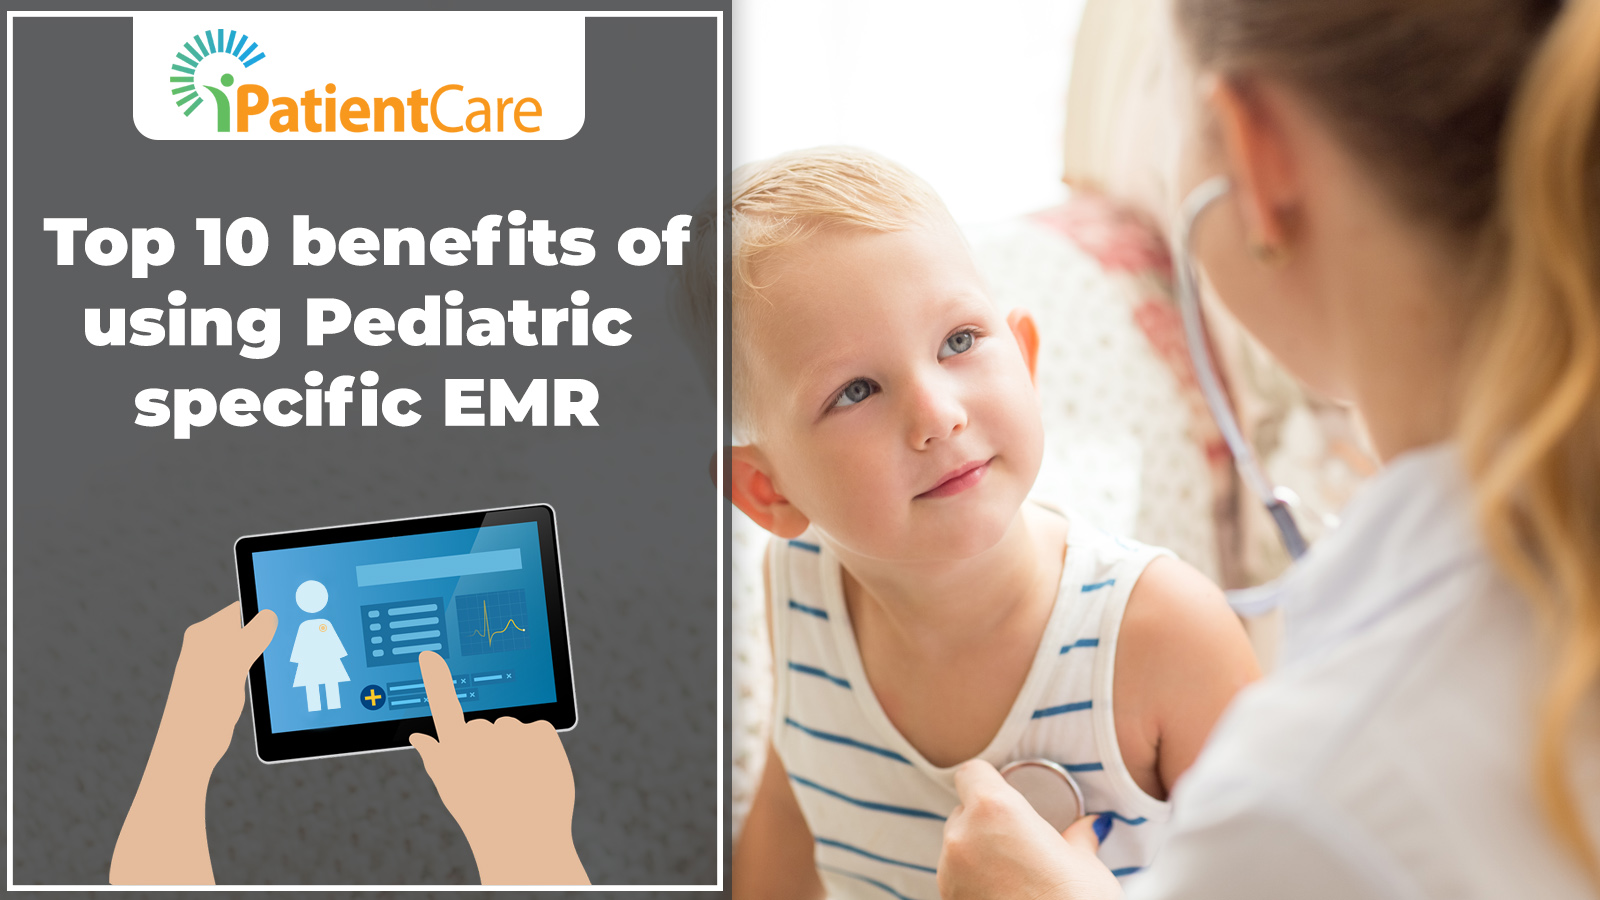 iPatientCare Blog - Top 10 benefits of using Pediatric specific EMR